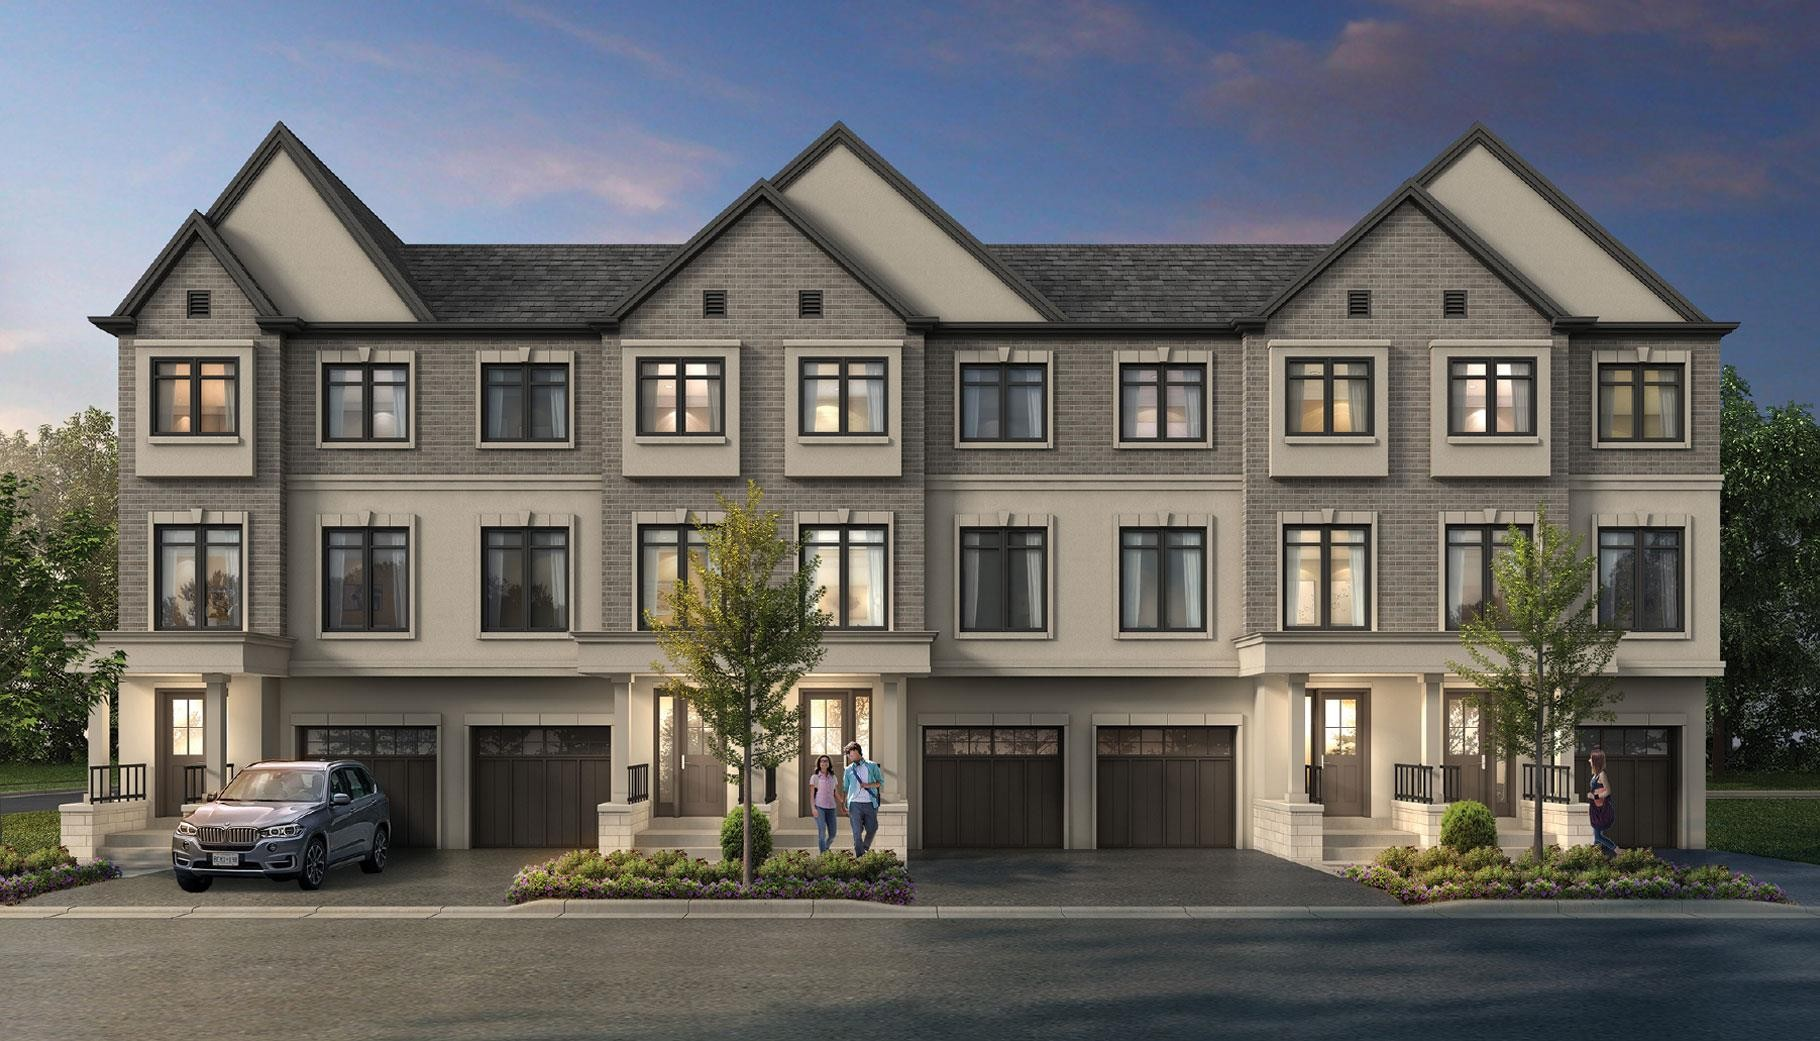 Towns of Baker Hill at 5472 Main St, Whitchurch-Stouffville 0